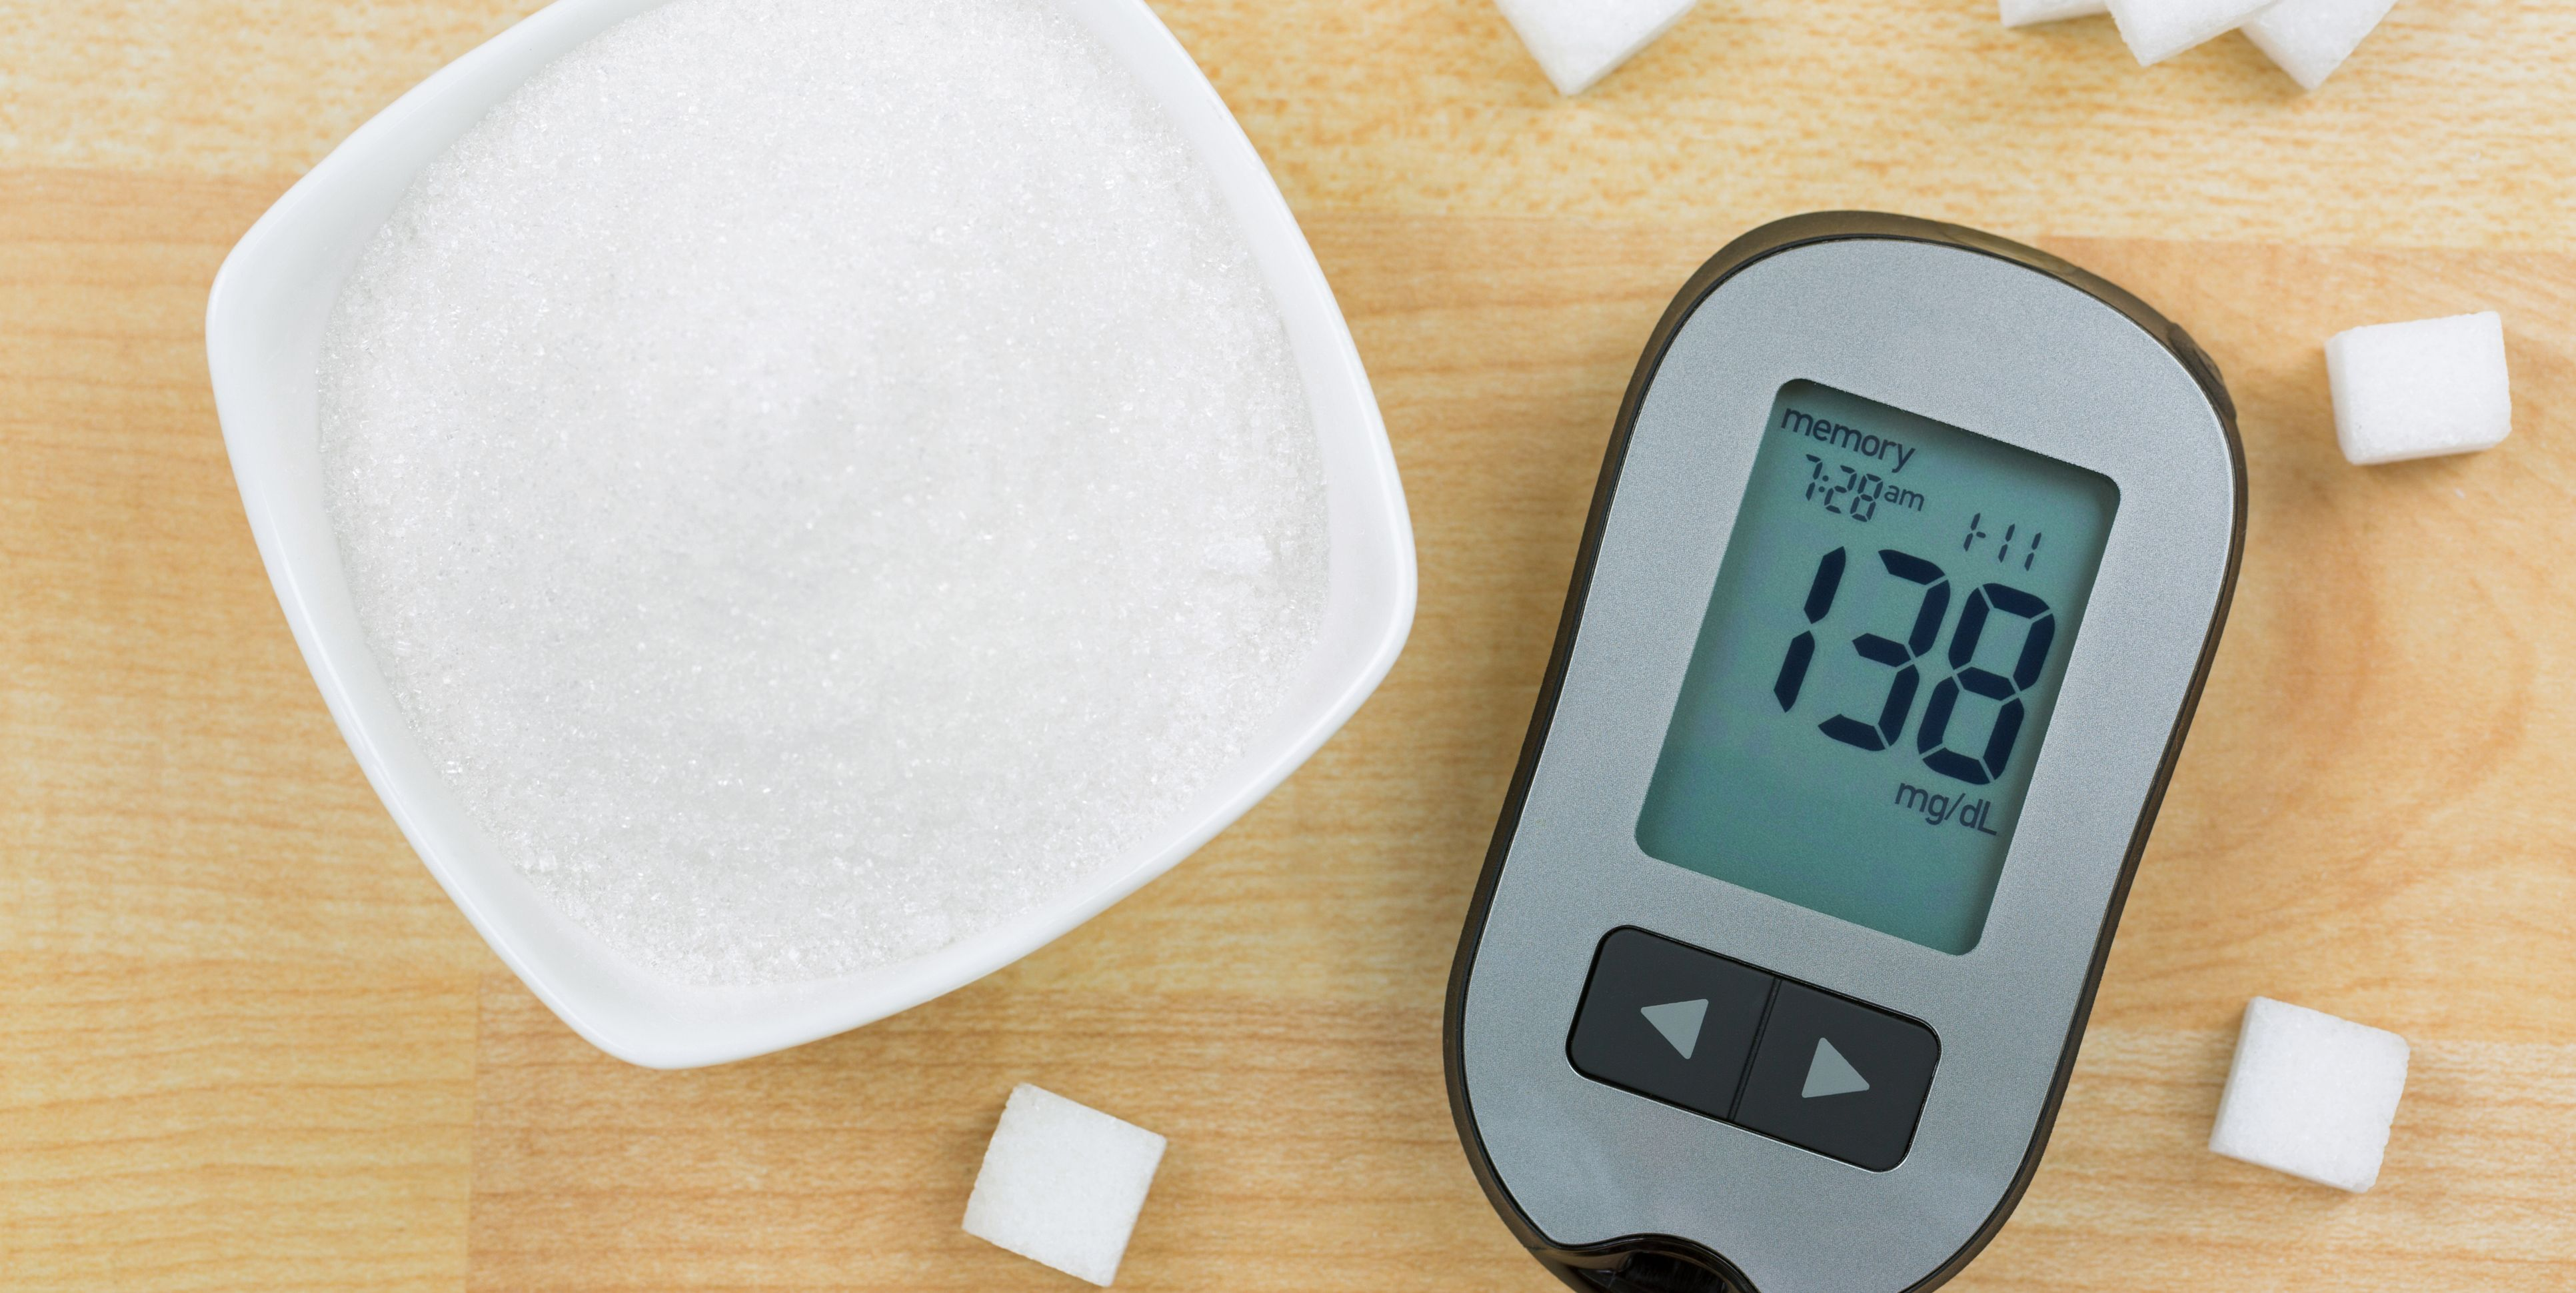 Blood Glucose meter device showing high blood sugar levels, next to sugar cubes